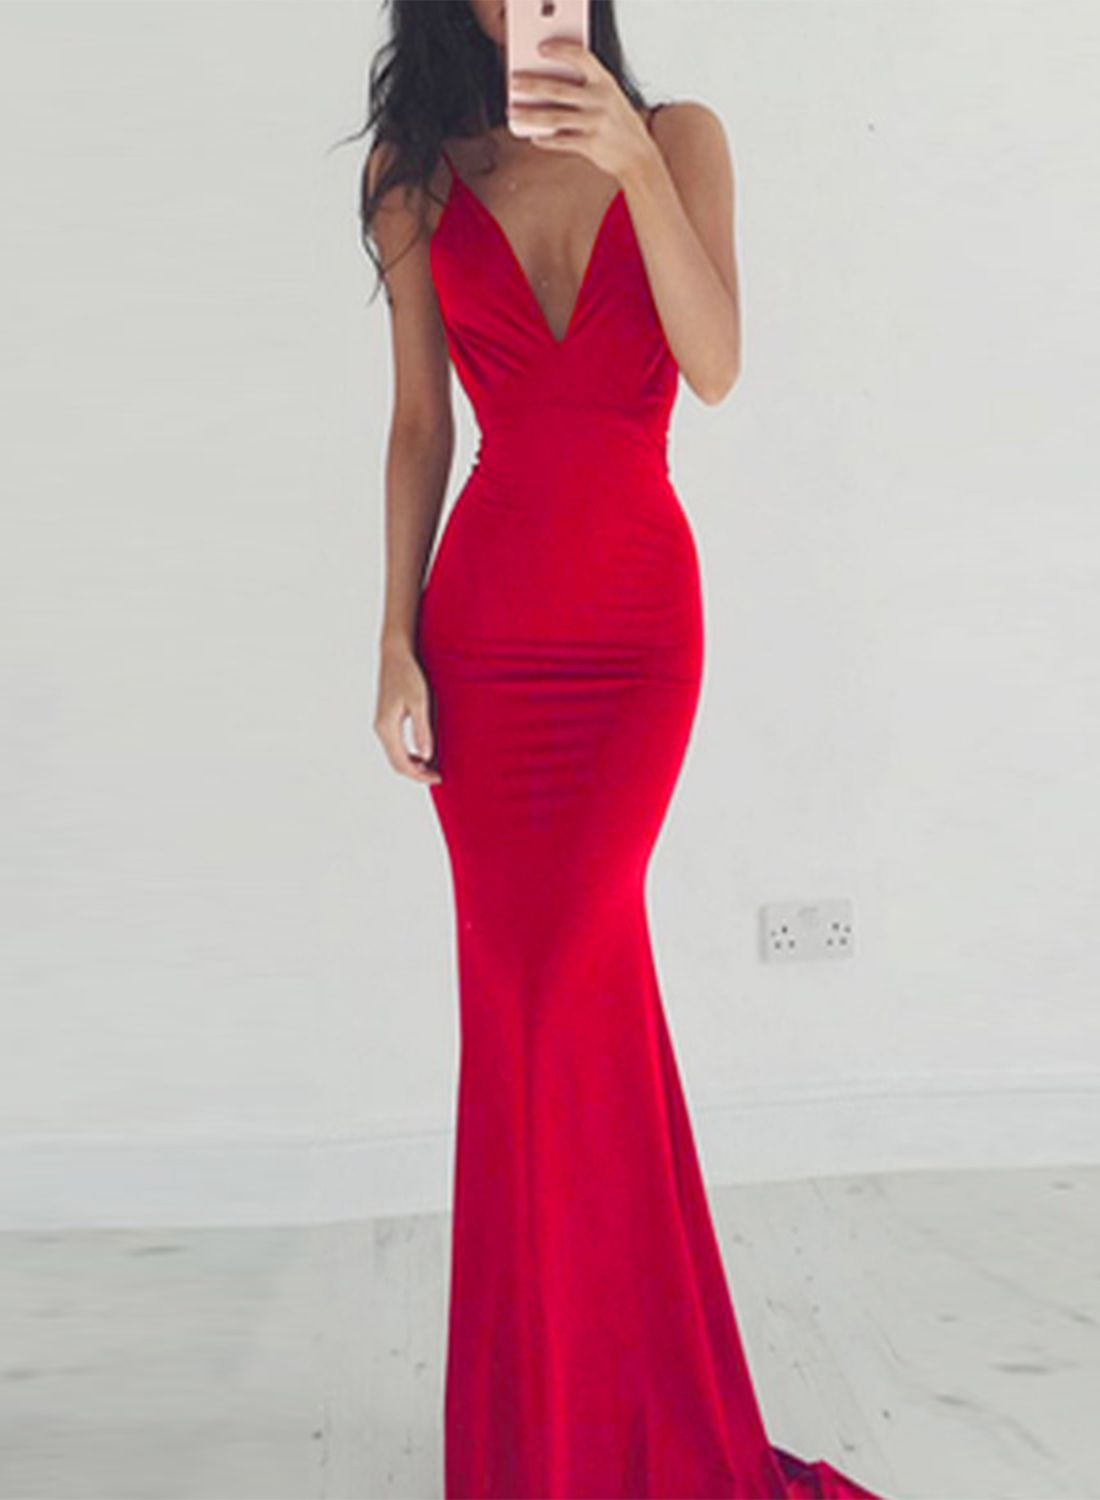 Charming v neckline prom dress sexy sleeveless mermaid dressy